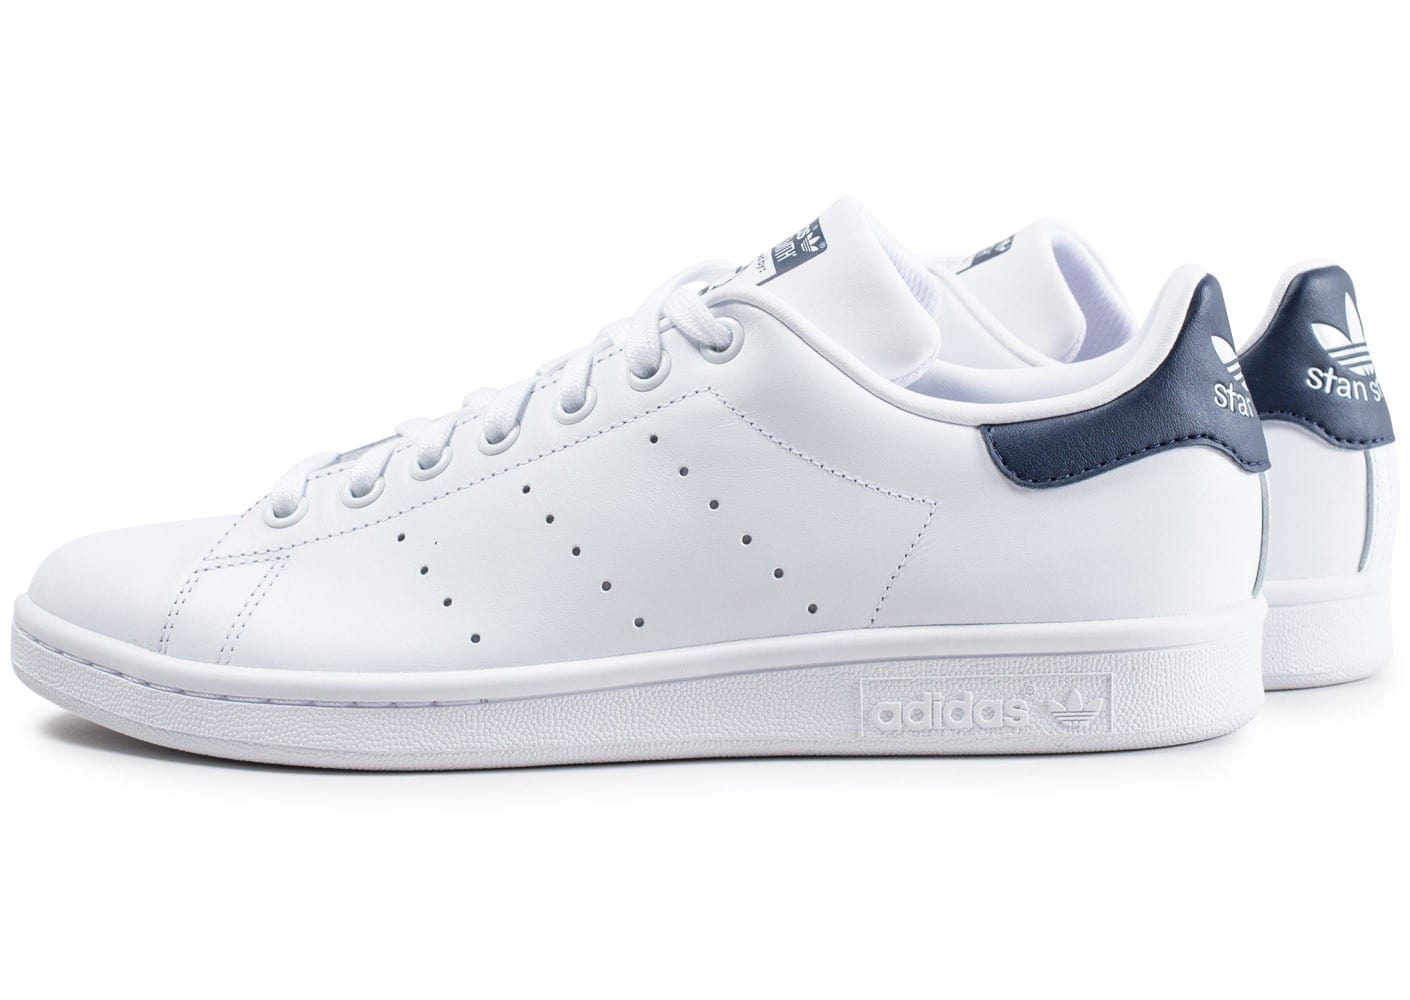 Stan Adidas Baskets Bleu Top Smith A3b6e Quality D40b7 qMUVzSpG